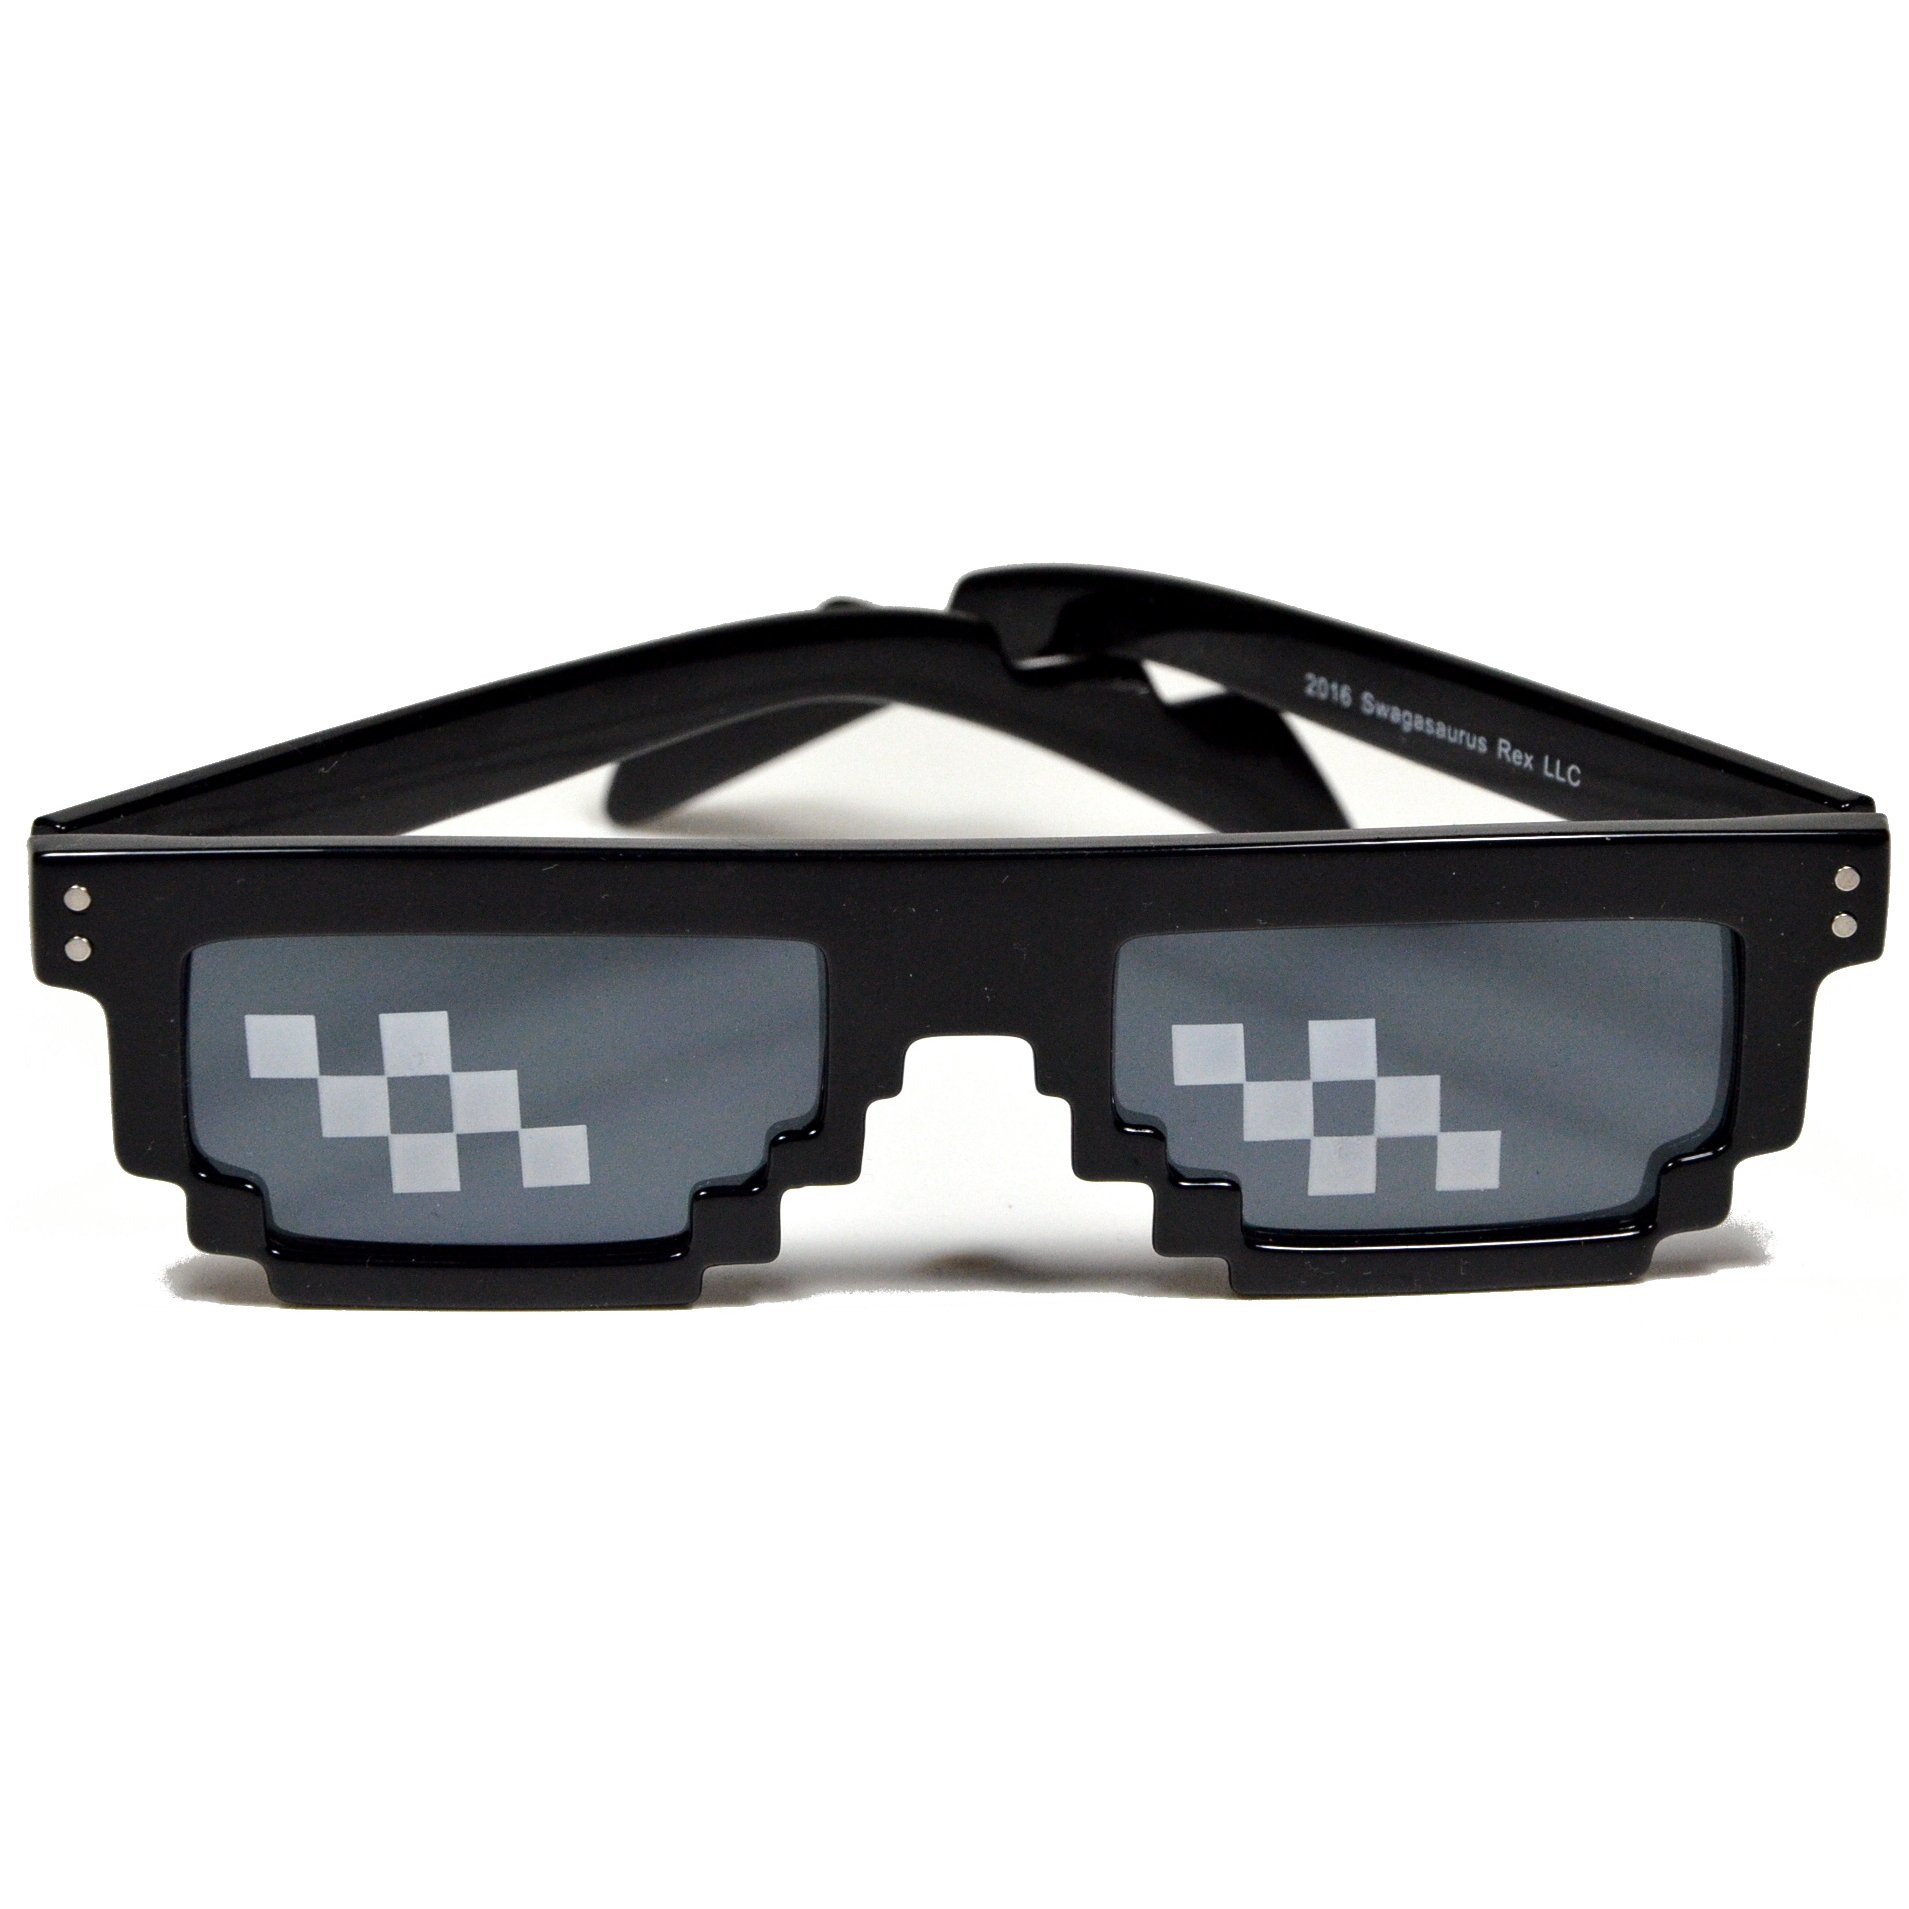 a7683d27396 Deal With It Glasses - Thug Life Sunglasses by Swagasaurus Rex product image